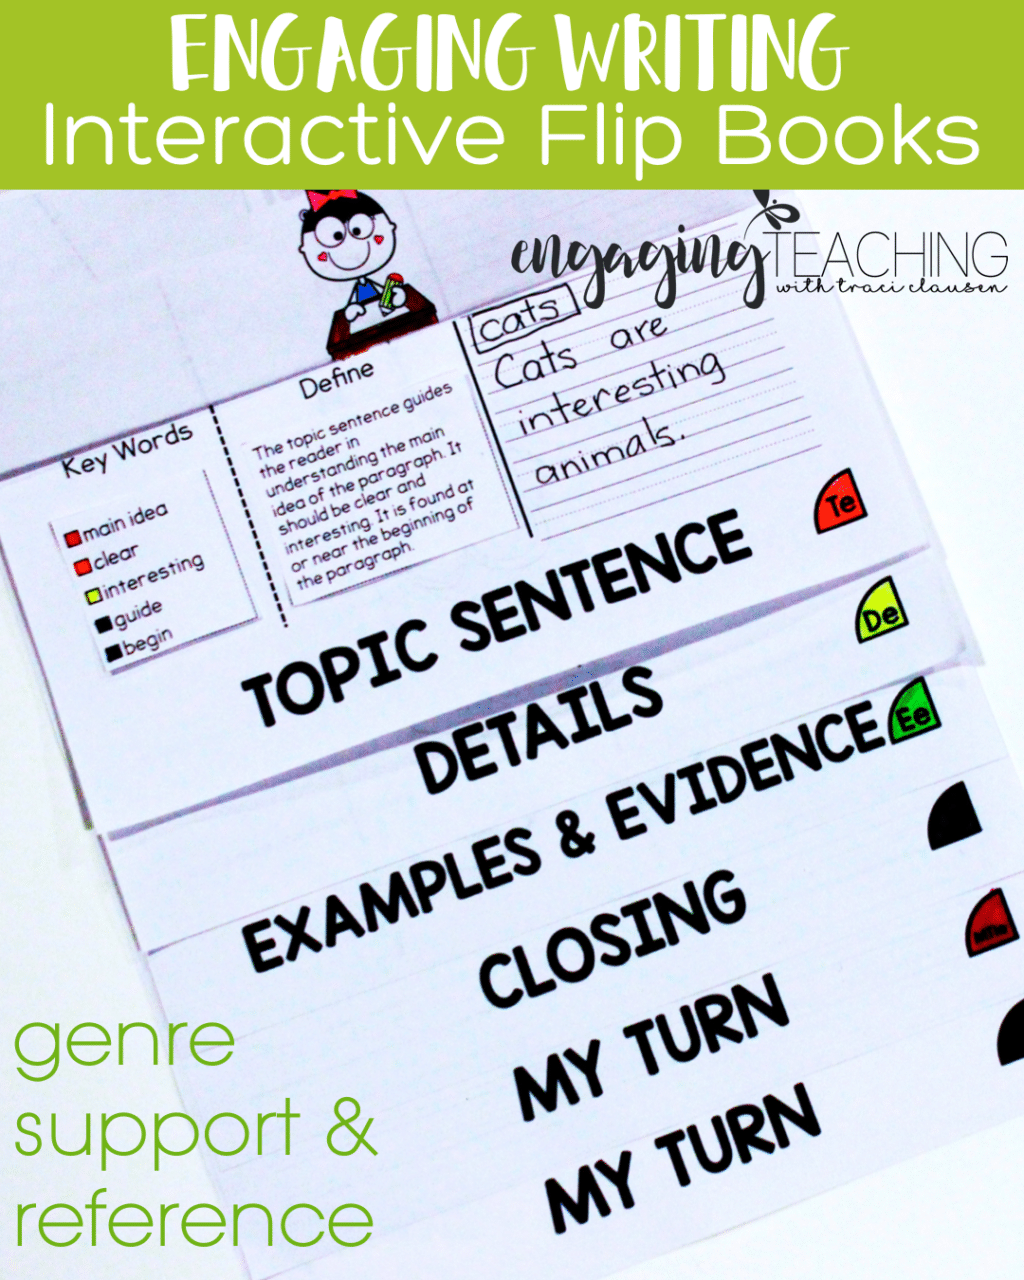 Engaging Writing Flip Book